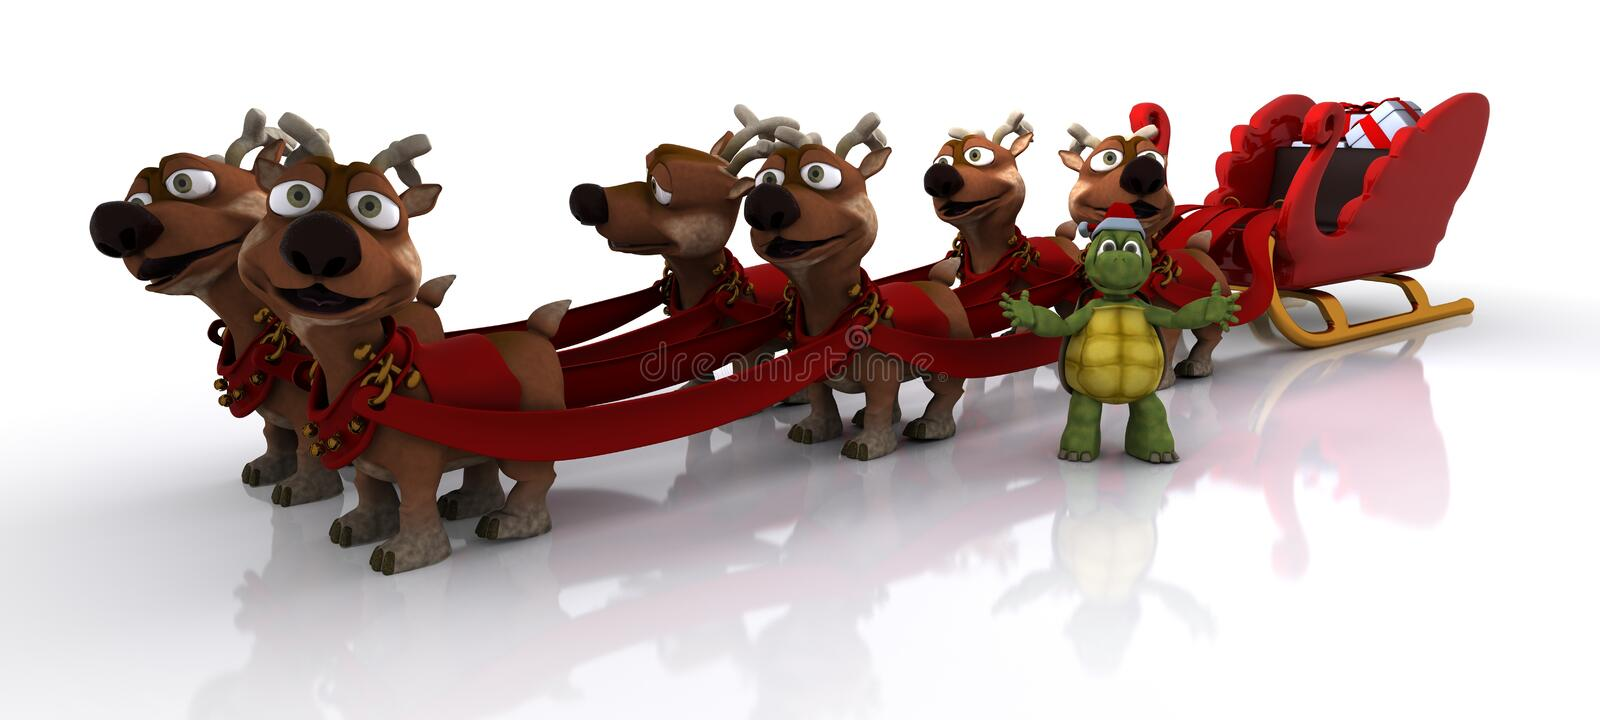 Tortoise with sleigh and reindeer royalty free illustration